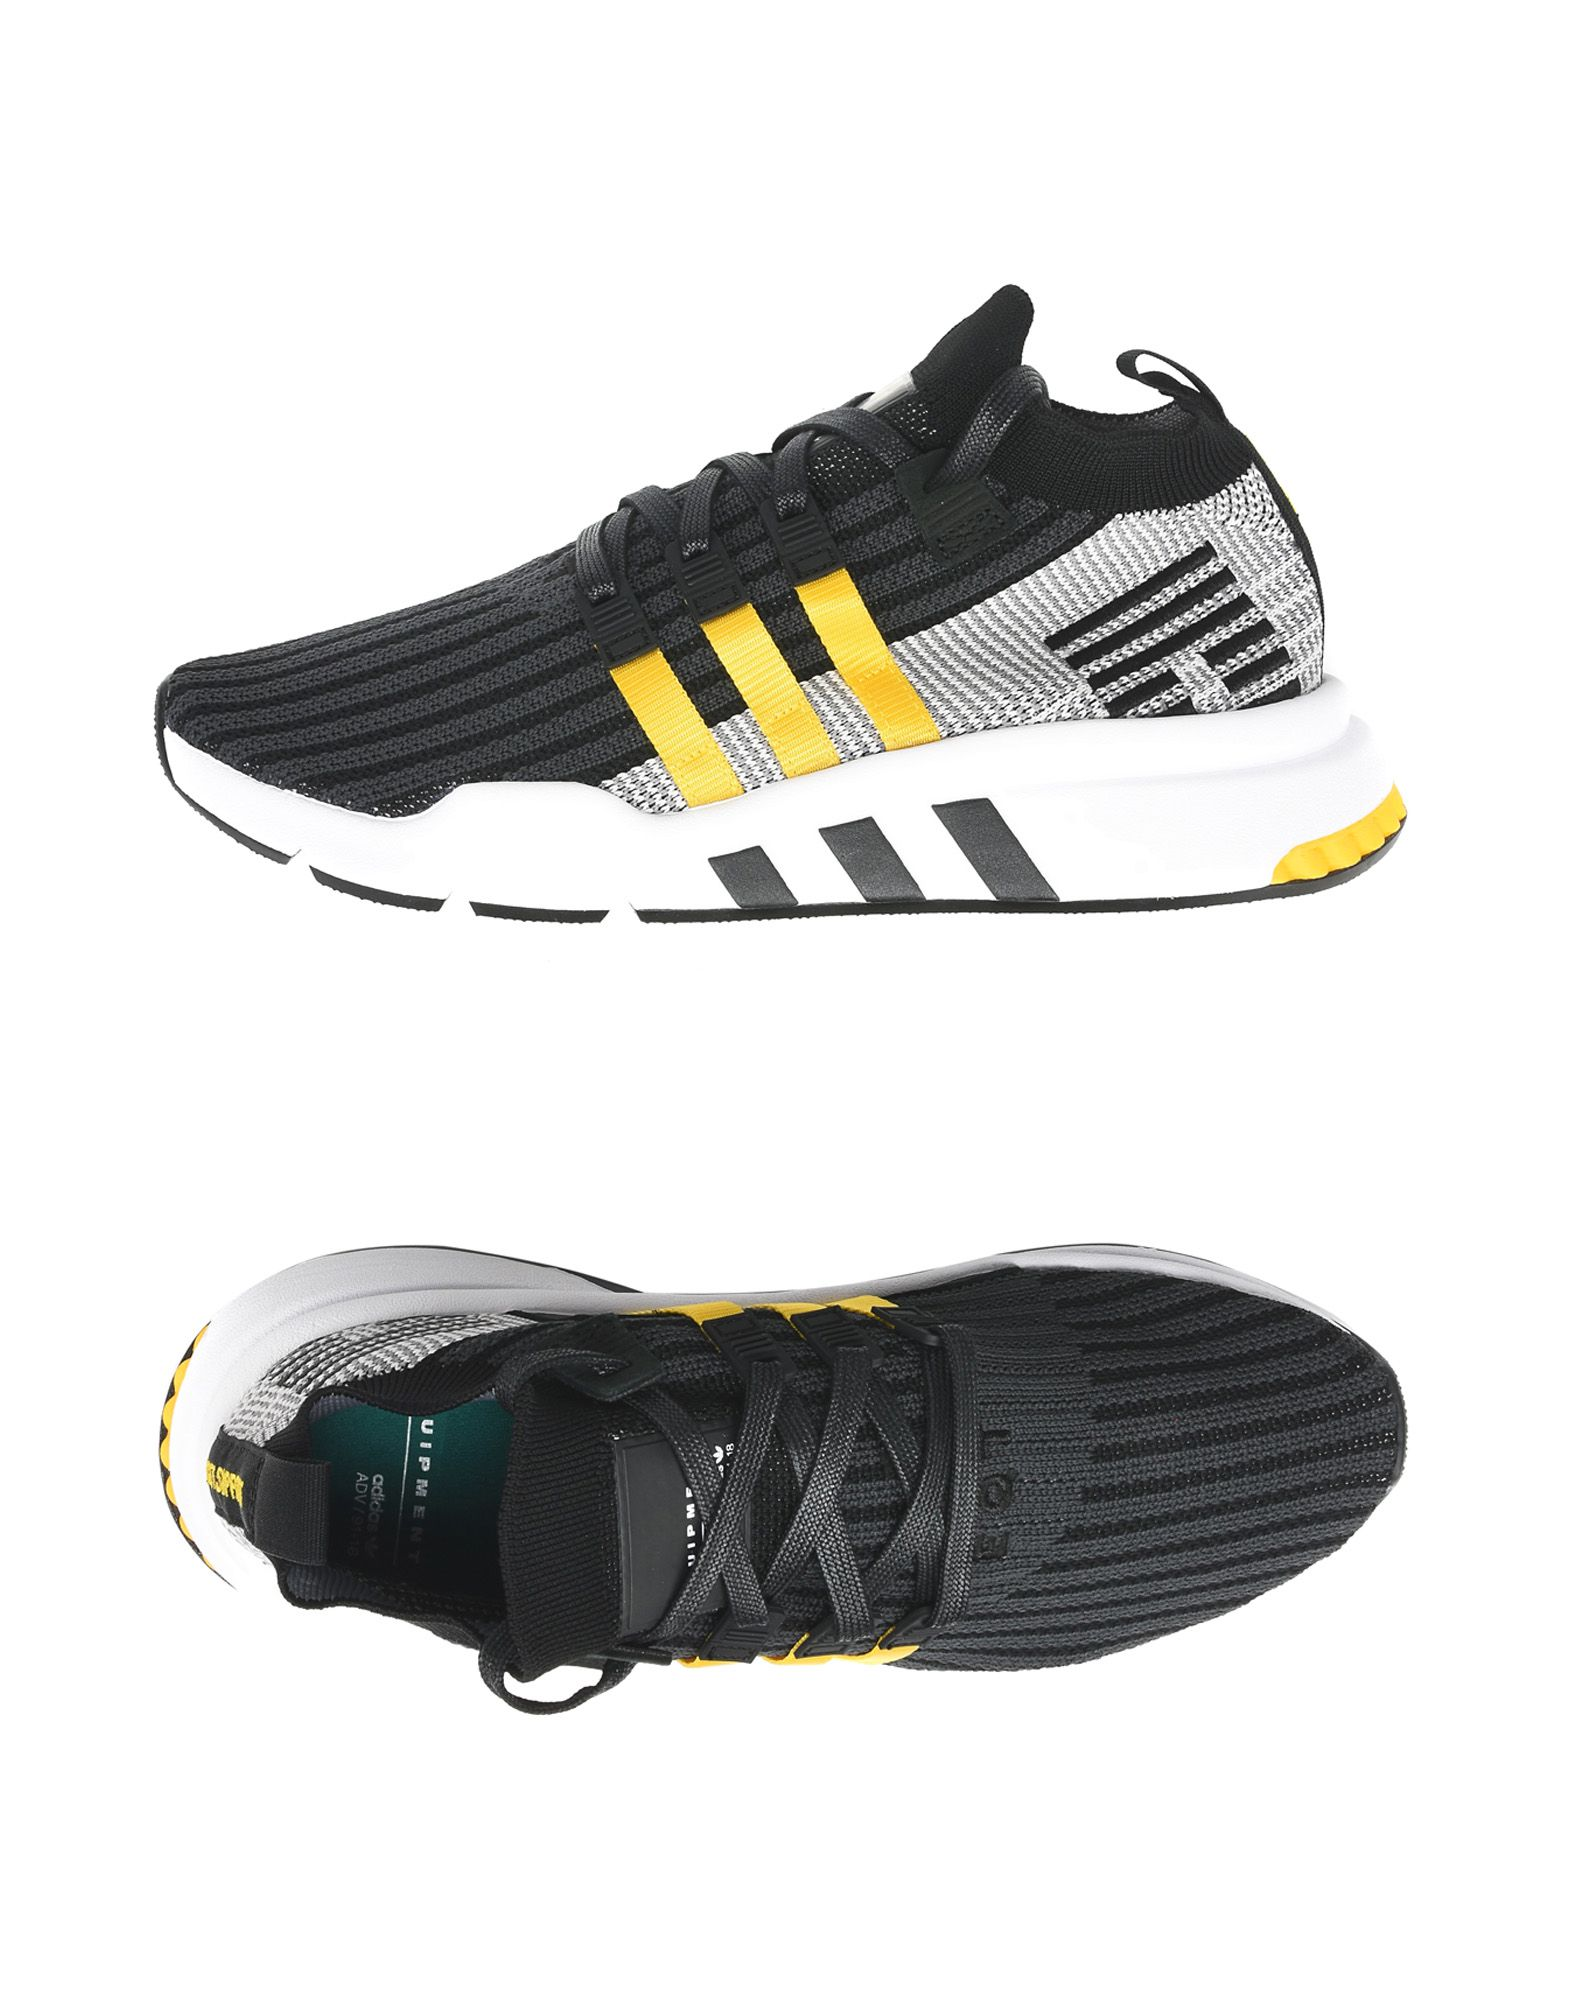 Adidas Originals Eqt Support Mid Adv - Uomo - 11480995WG